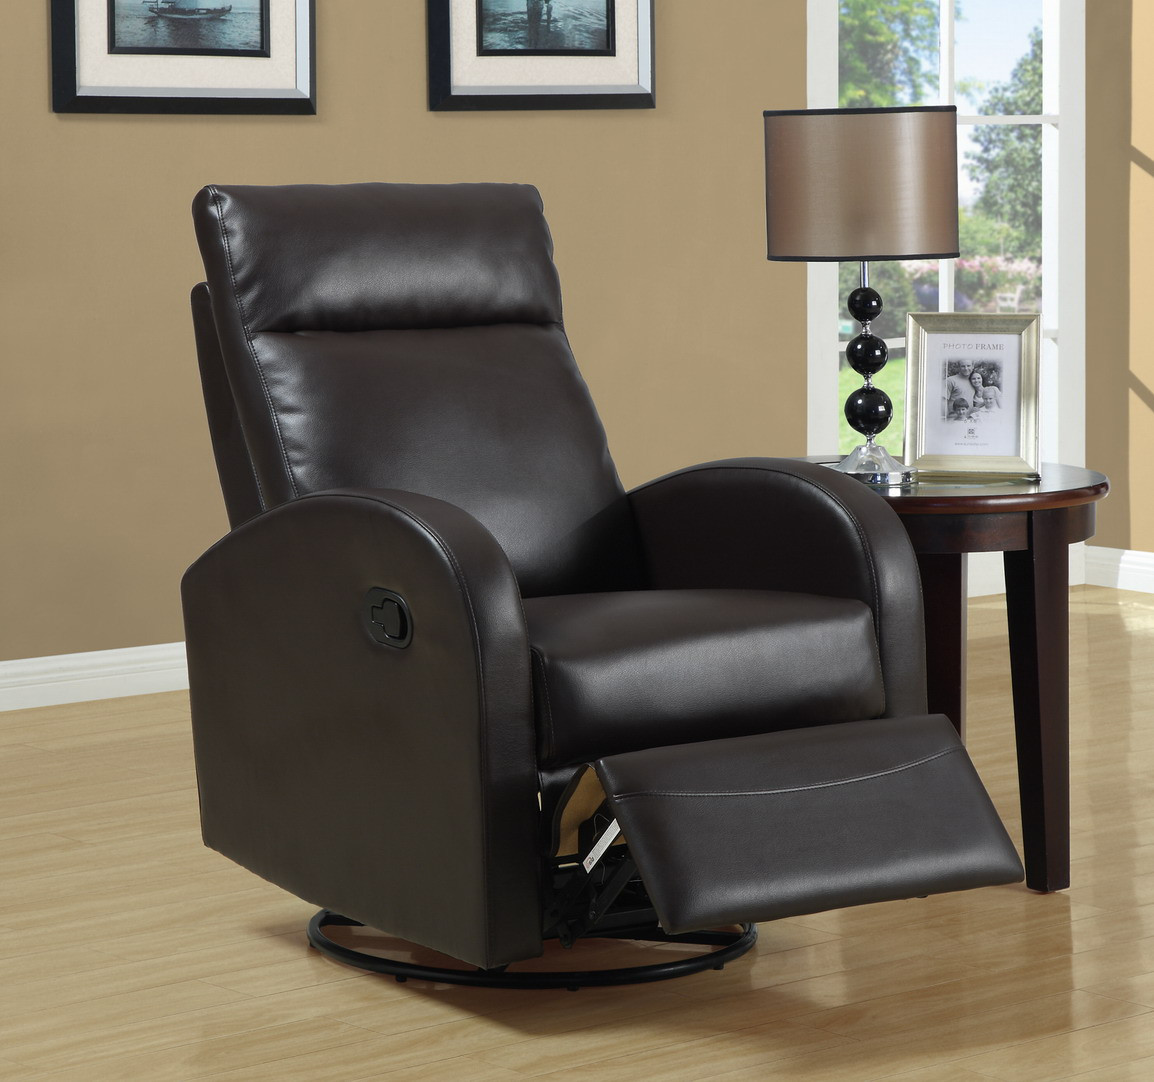 Best ideas about Modern Recliner Chair . Save or Pin Modern Recliner Chair with Leather Material Traba Homes Now.